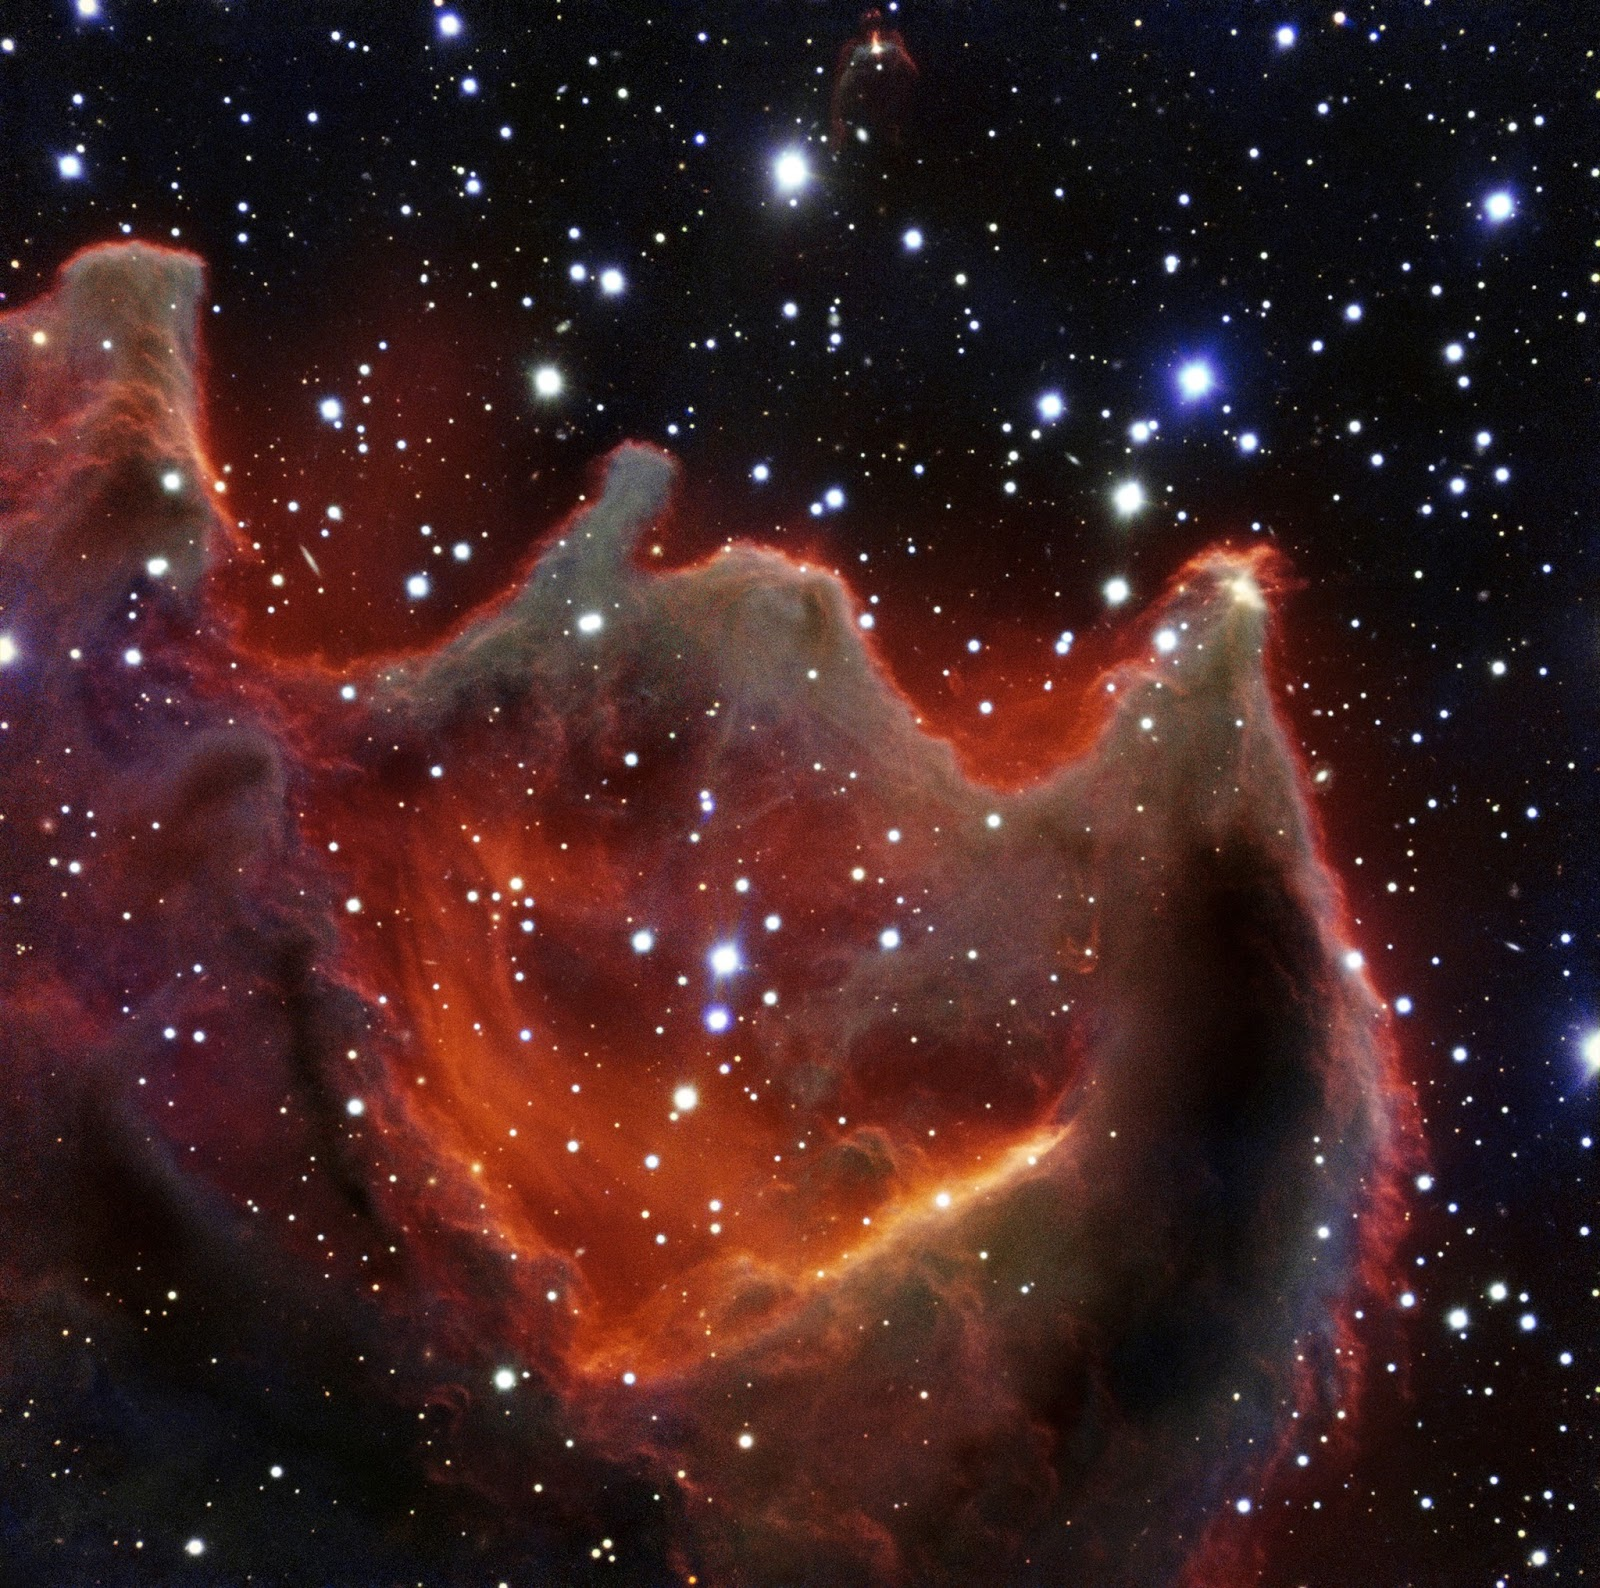 VLT image of the cometary globule CG4  VLT image of the cometary globule CG4   Like the gaping mouth of a gigantic celestial creature, the cometary globule CG4 glows menacingly in this image from ESO's Very Large Telescope. Although it looks huge and bright in this image it is actually a faint nebula and not easy to observe. The exact nature of CG4 remains a mystery.  Image Credit: ESO Explanation from: http://www.eso.org/public/images/eso1503a/